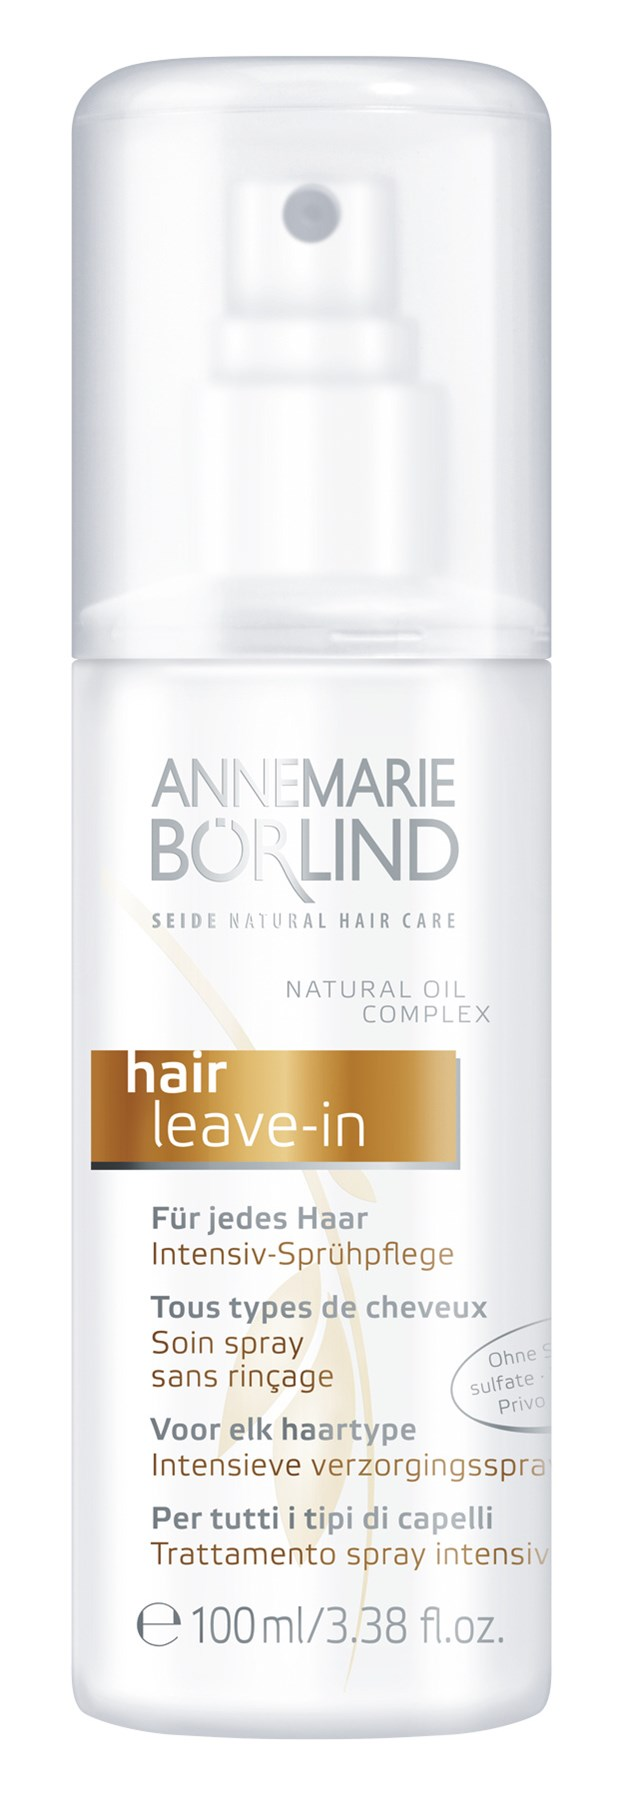 Natural Hair Care Hair Leave-in